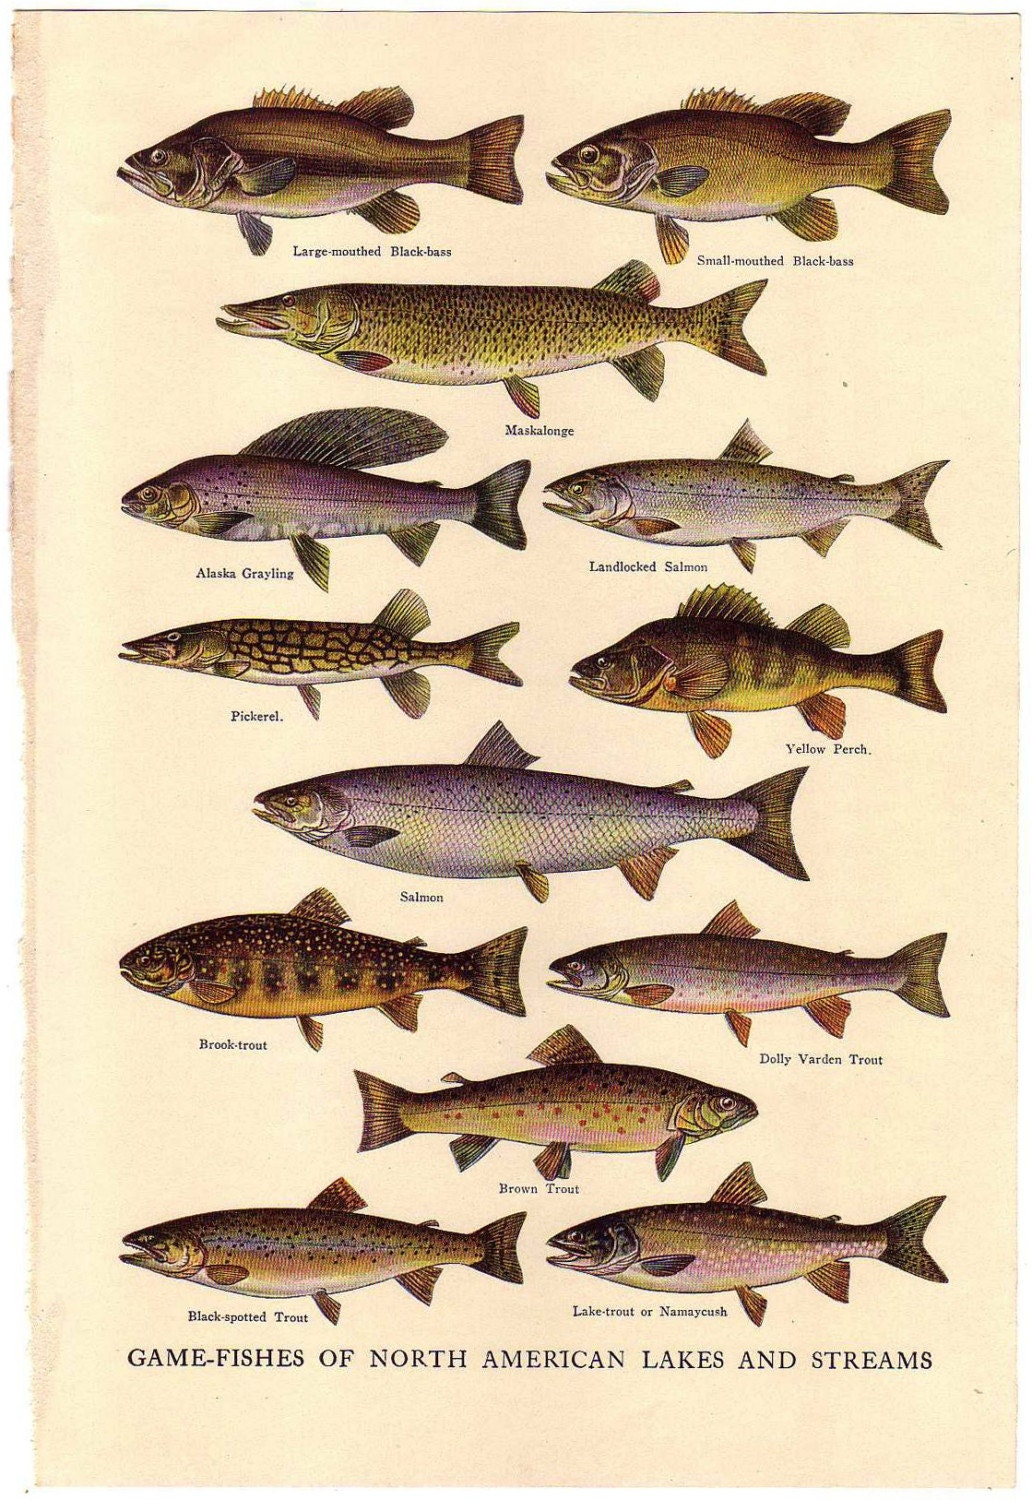 1927 vintage fish encyclopedia illustration by sushipotvintage for Illinois game and fish